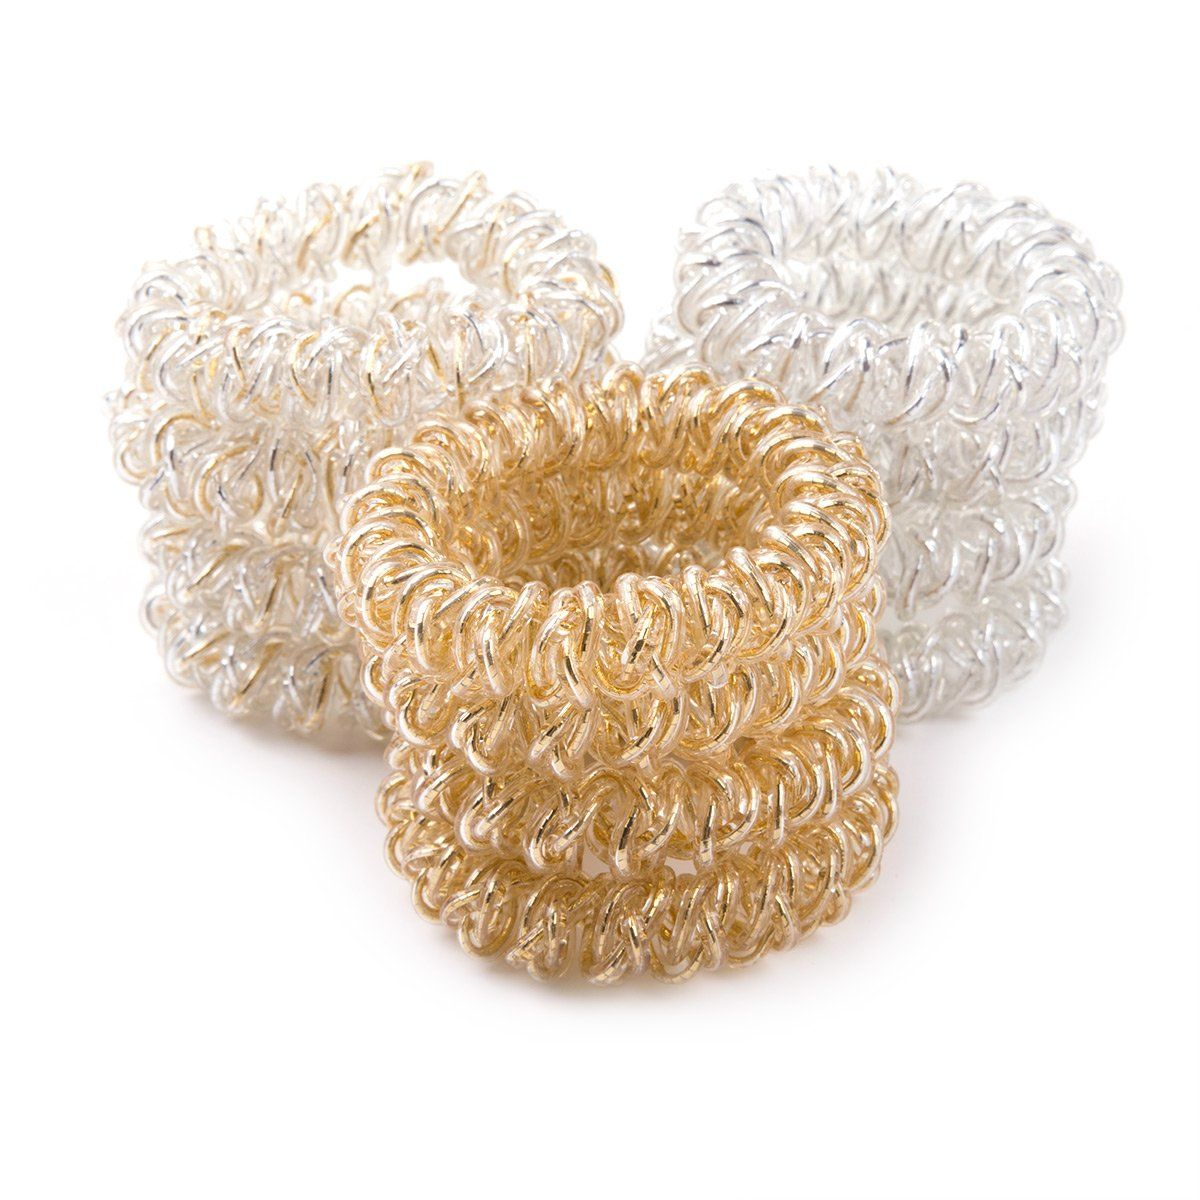 12pcs Rubber Metallic Coil Telephone Wire Ponytail Holder Hair Ties Elastic Band